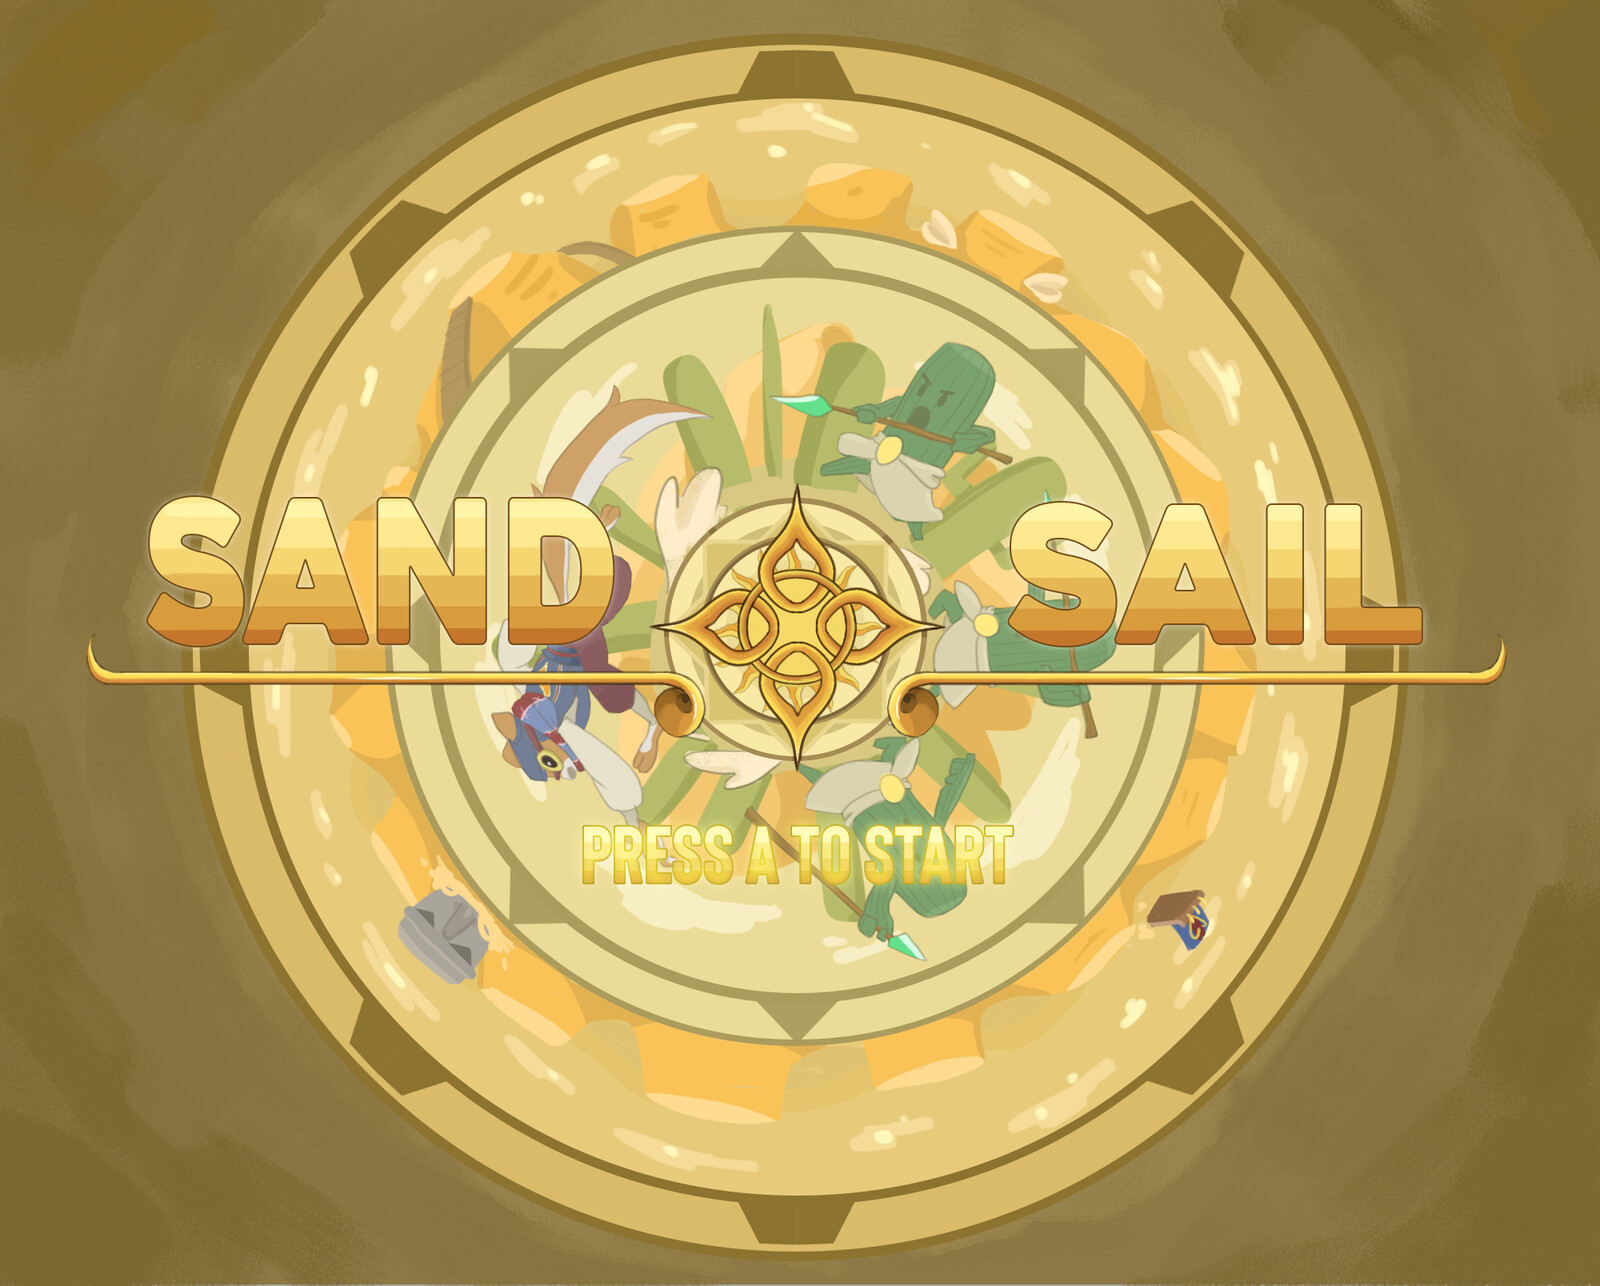 Sand Sail UI and Concept Art